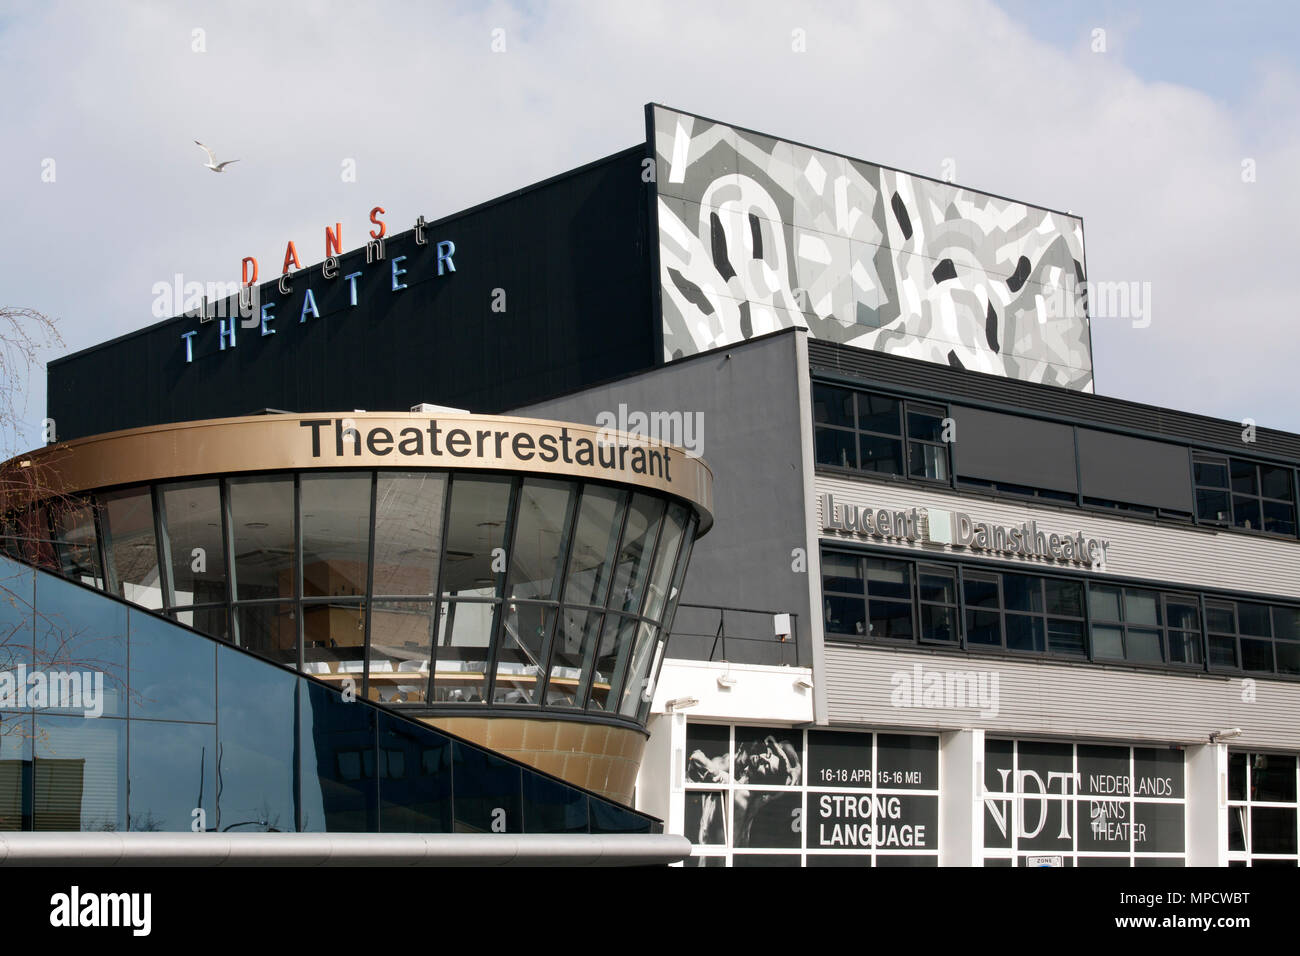 Den Haag ,Nederland-april 8, 2015: The Lucent Dance Theatre is home to the Dutch dance partnership Dance Theatre - Stock Image